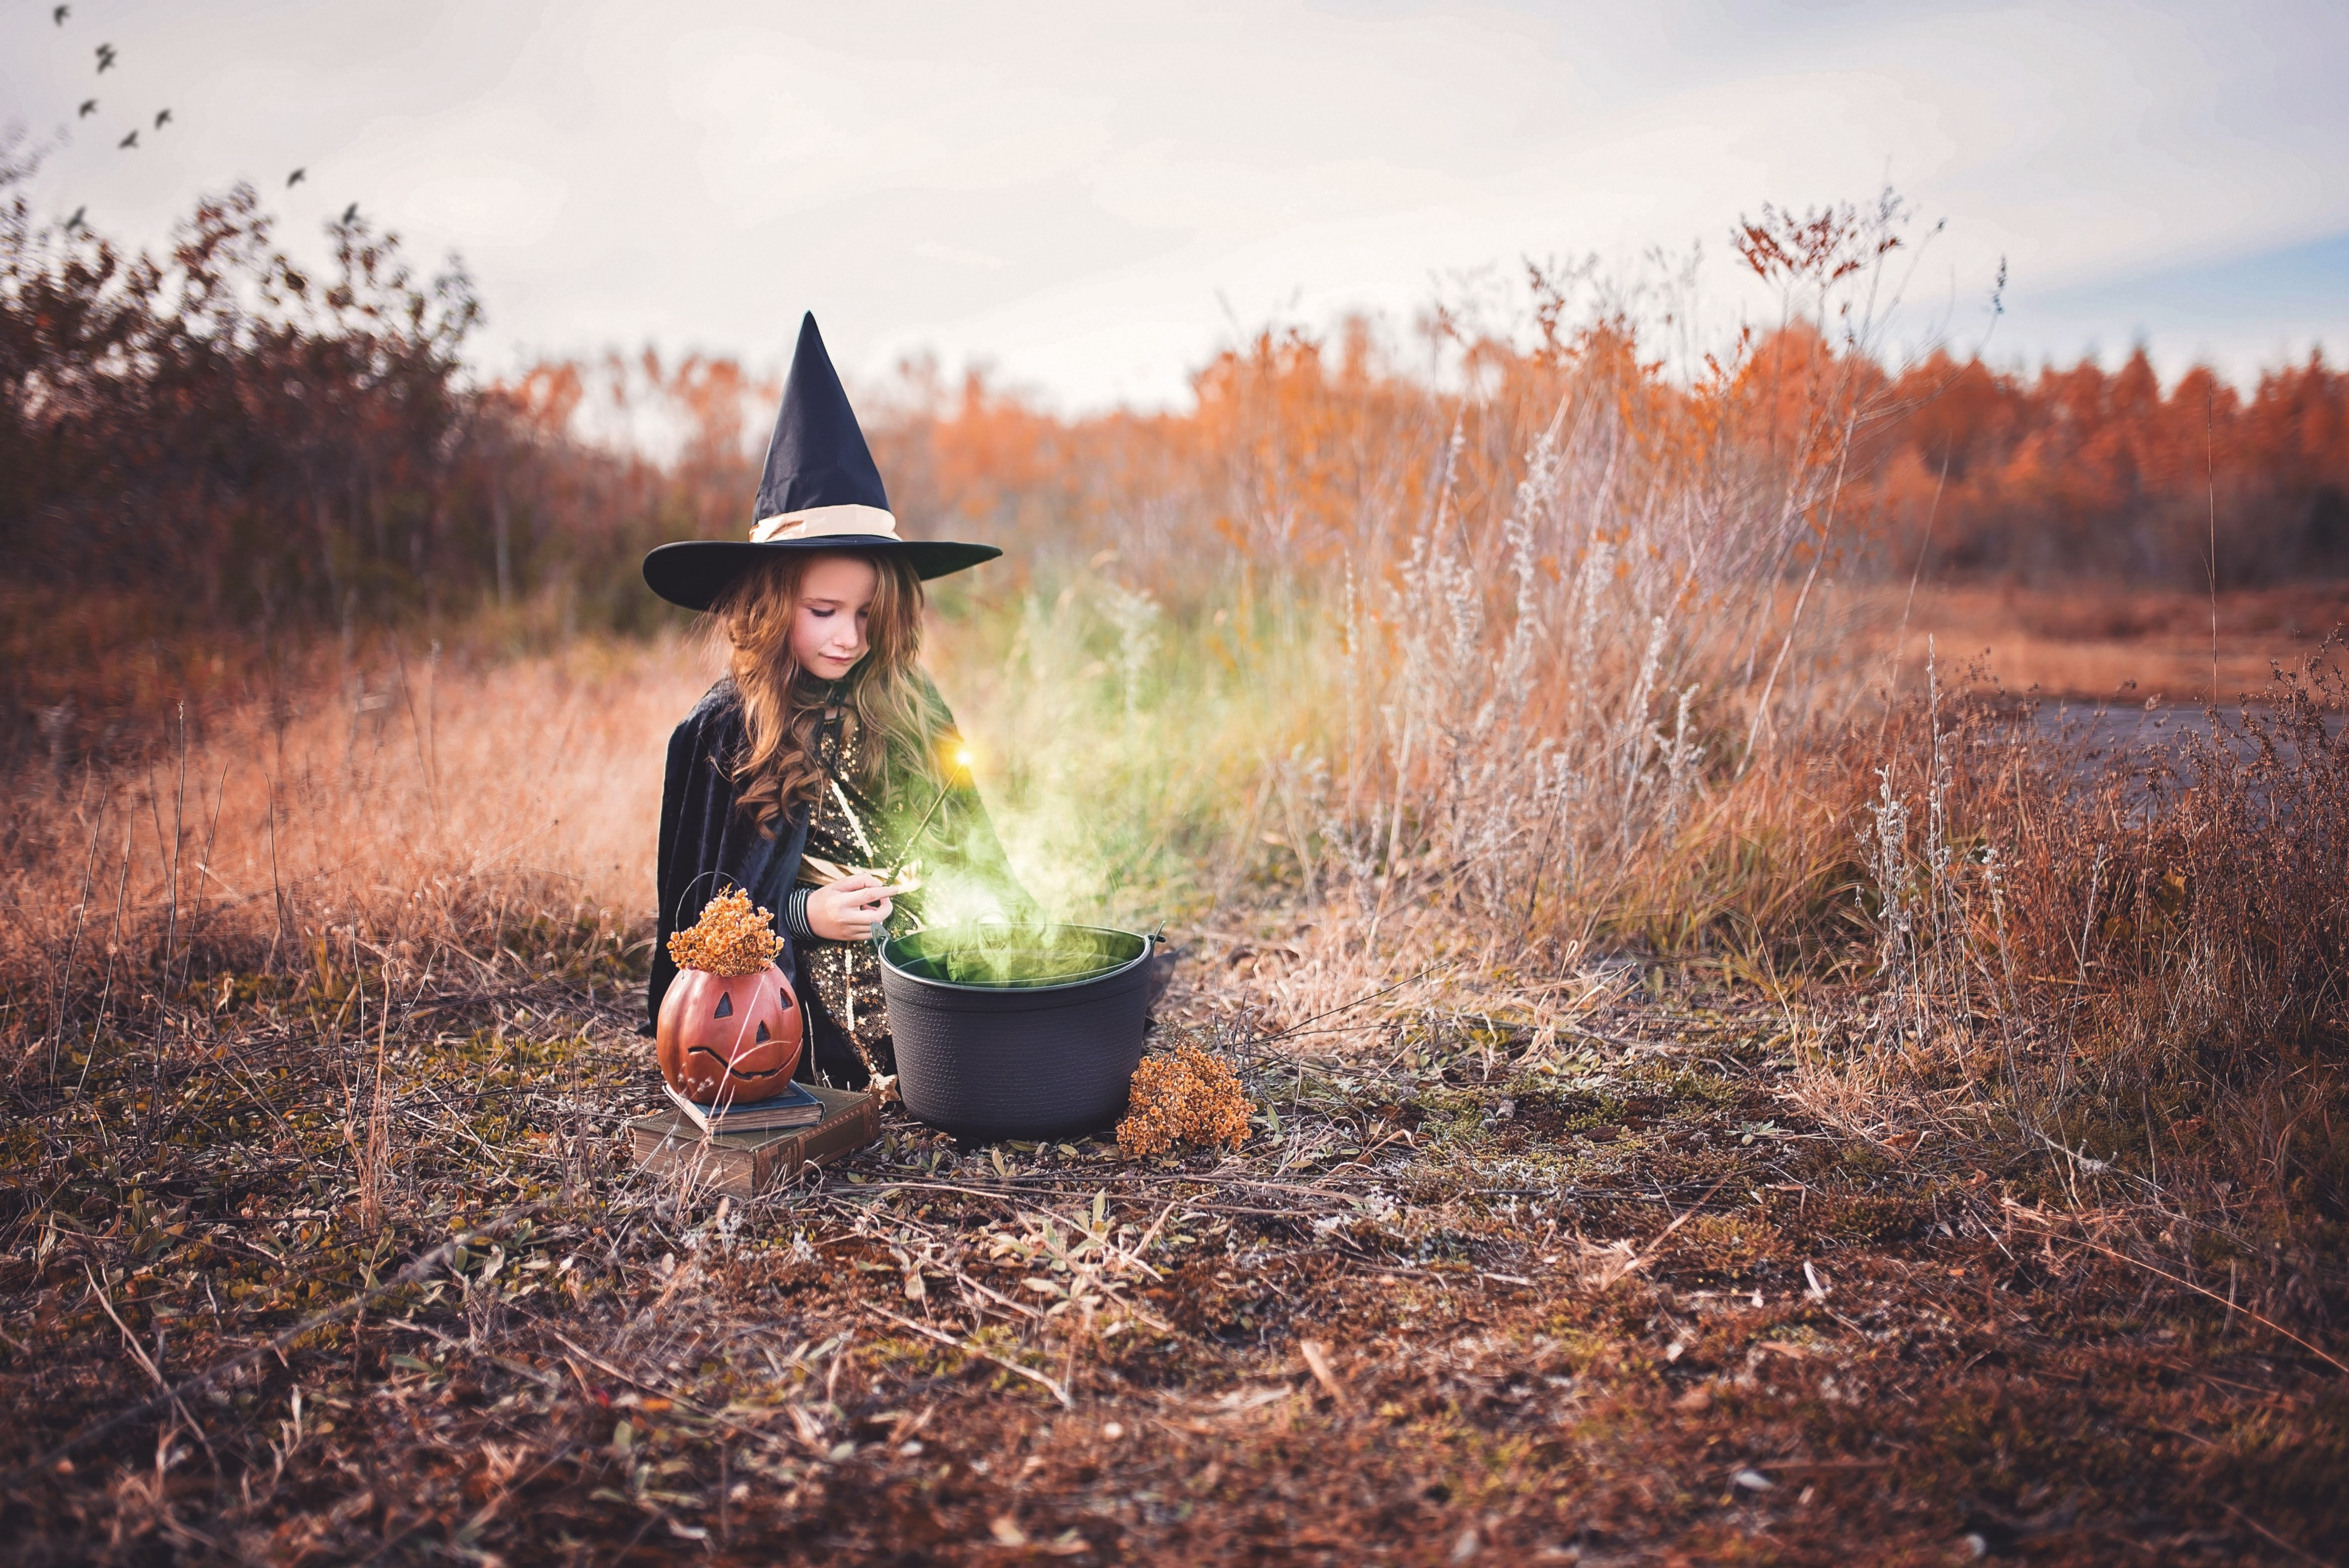 Young girl in a witch costume with a smoking cauldron in front of her.